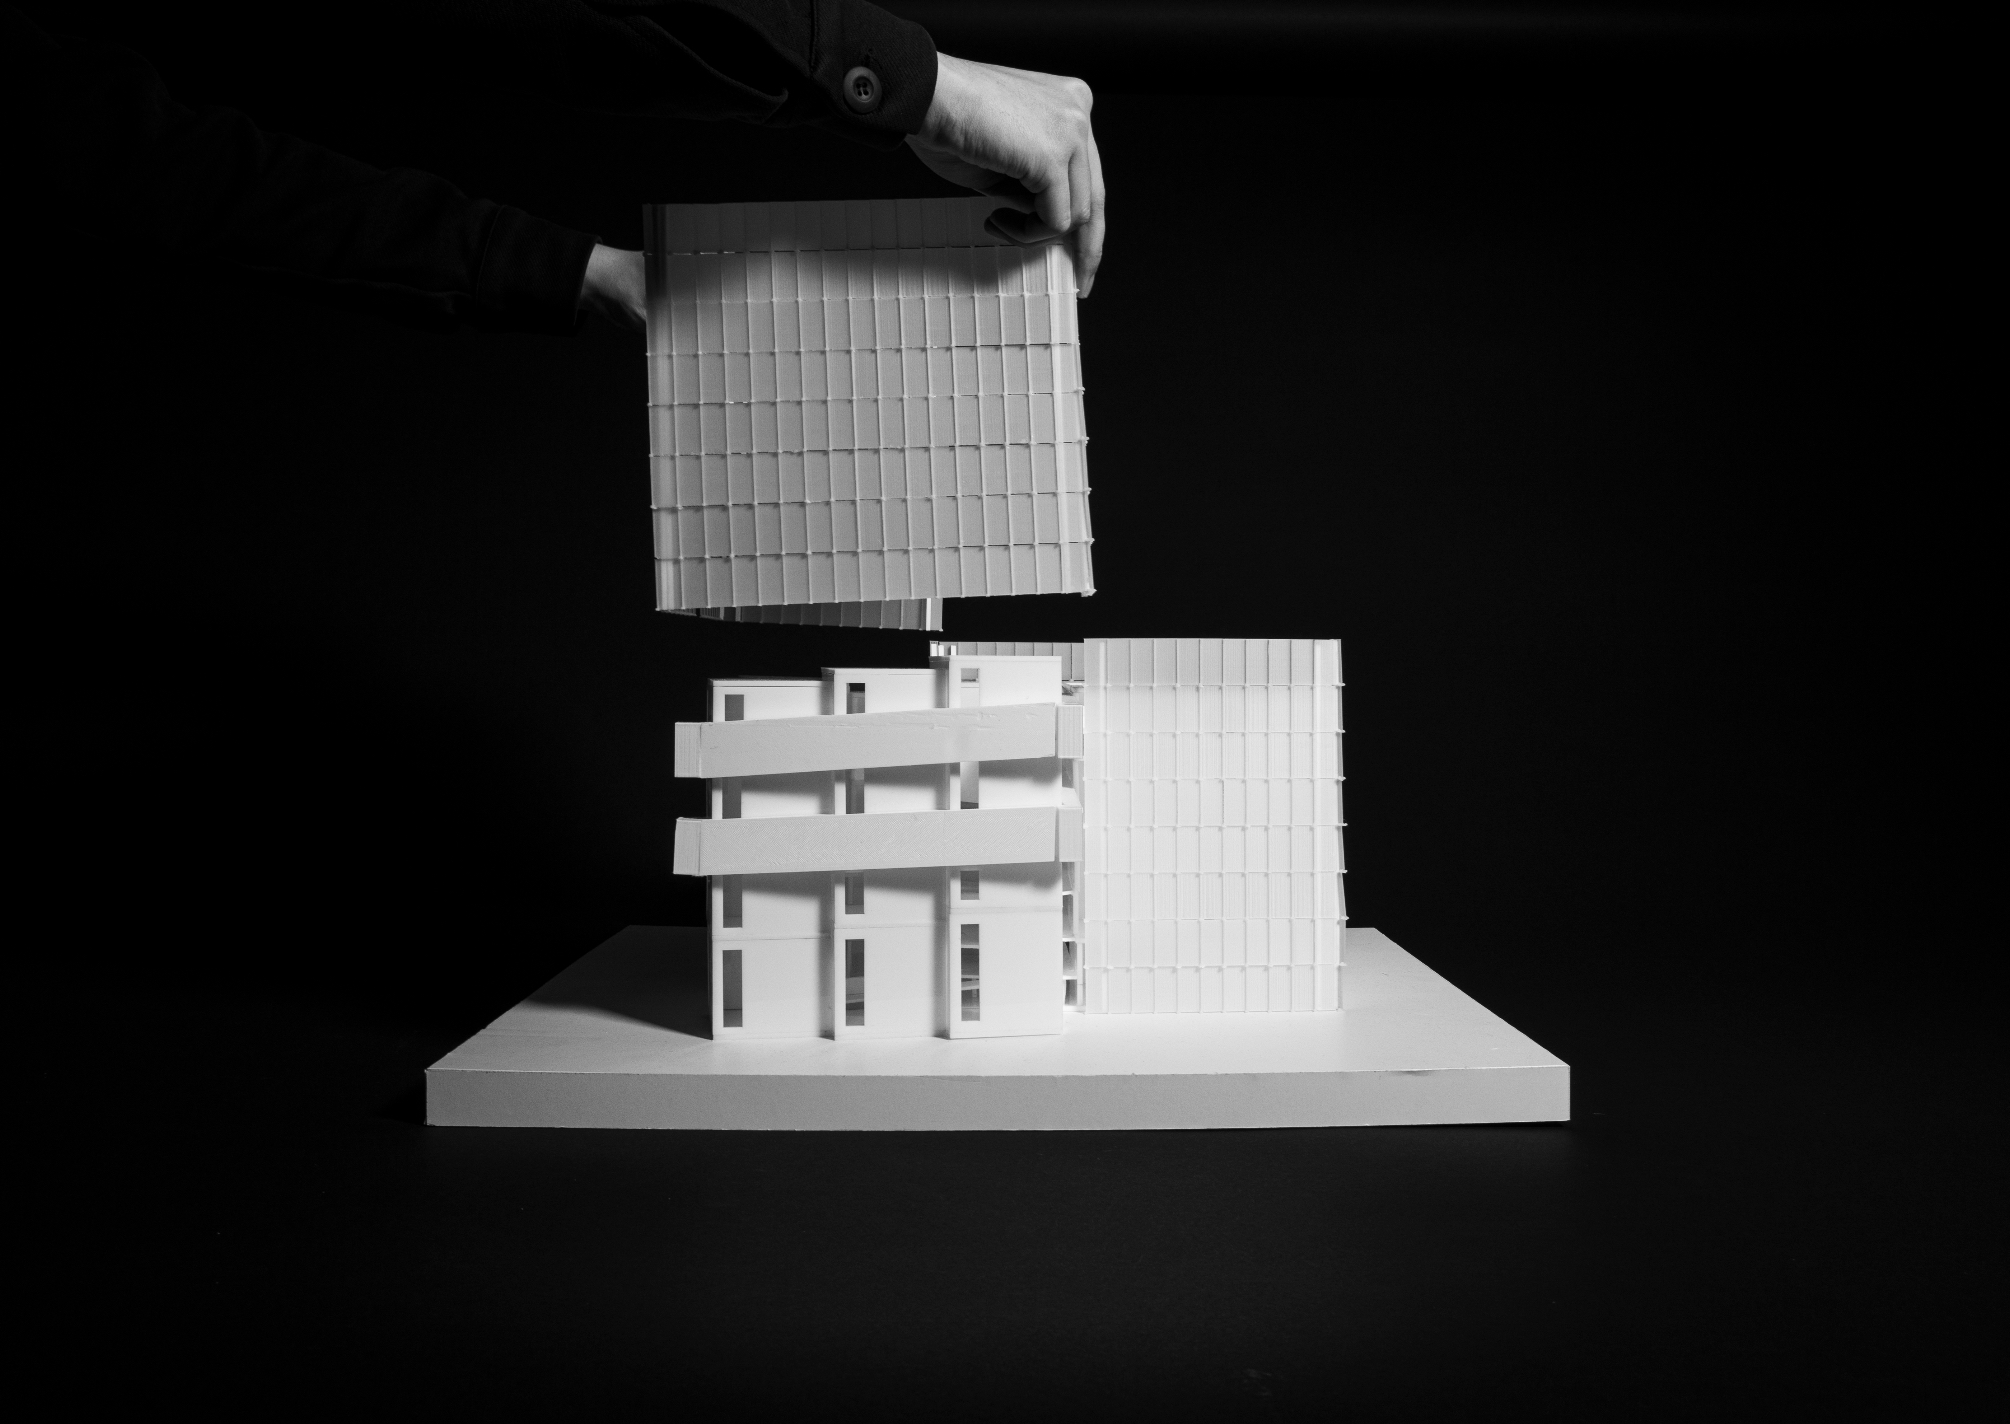 Photo of completed model - facade comes off